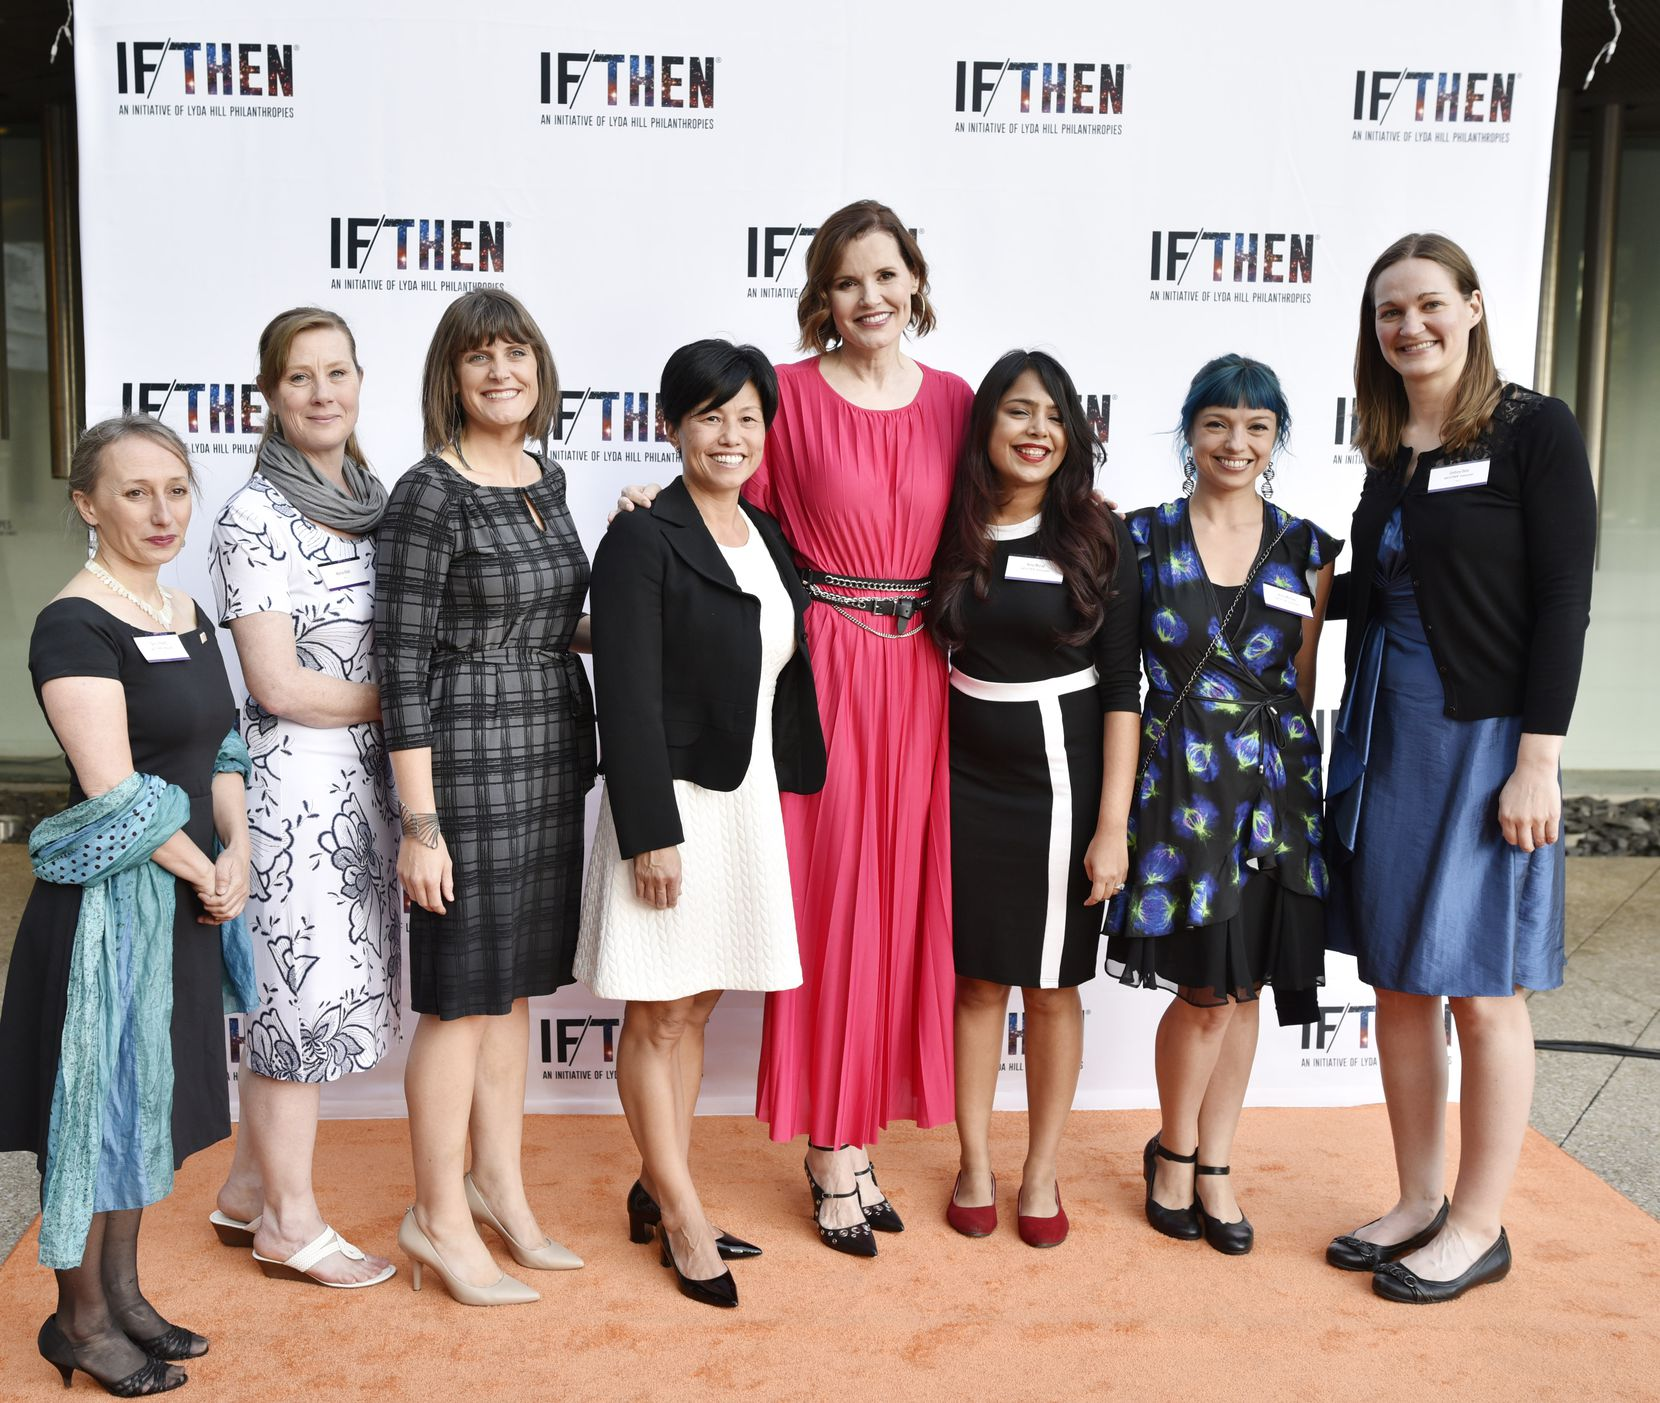 """Geena Davis, fourth from right, actor and founder of the Geena Davis Institute on Gender in Media, poses for a photo with IF/THEN Ambassadors and scientists during a red carpet event for the IF/THEN Ambassador Summit """"An Evening of Science and Storytelling,"""" at the Perot Museum."""